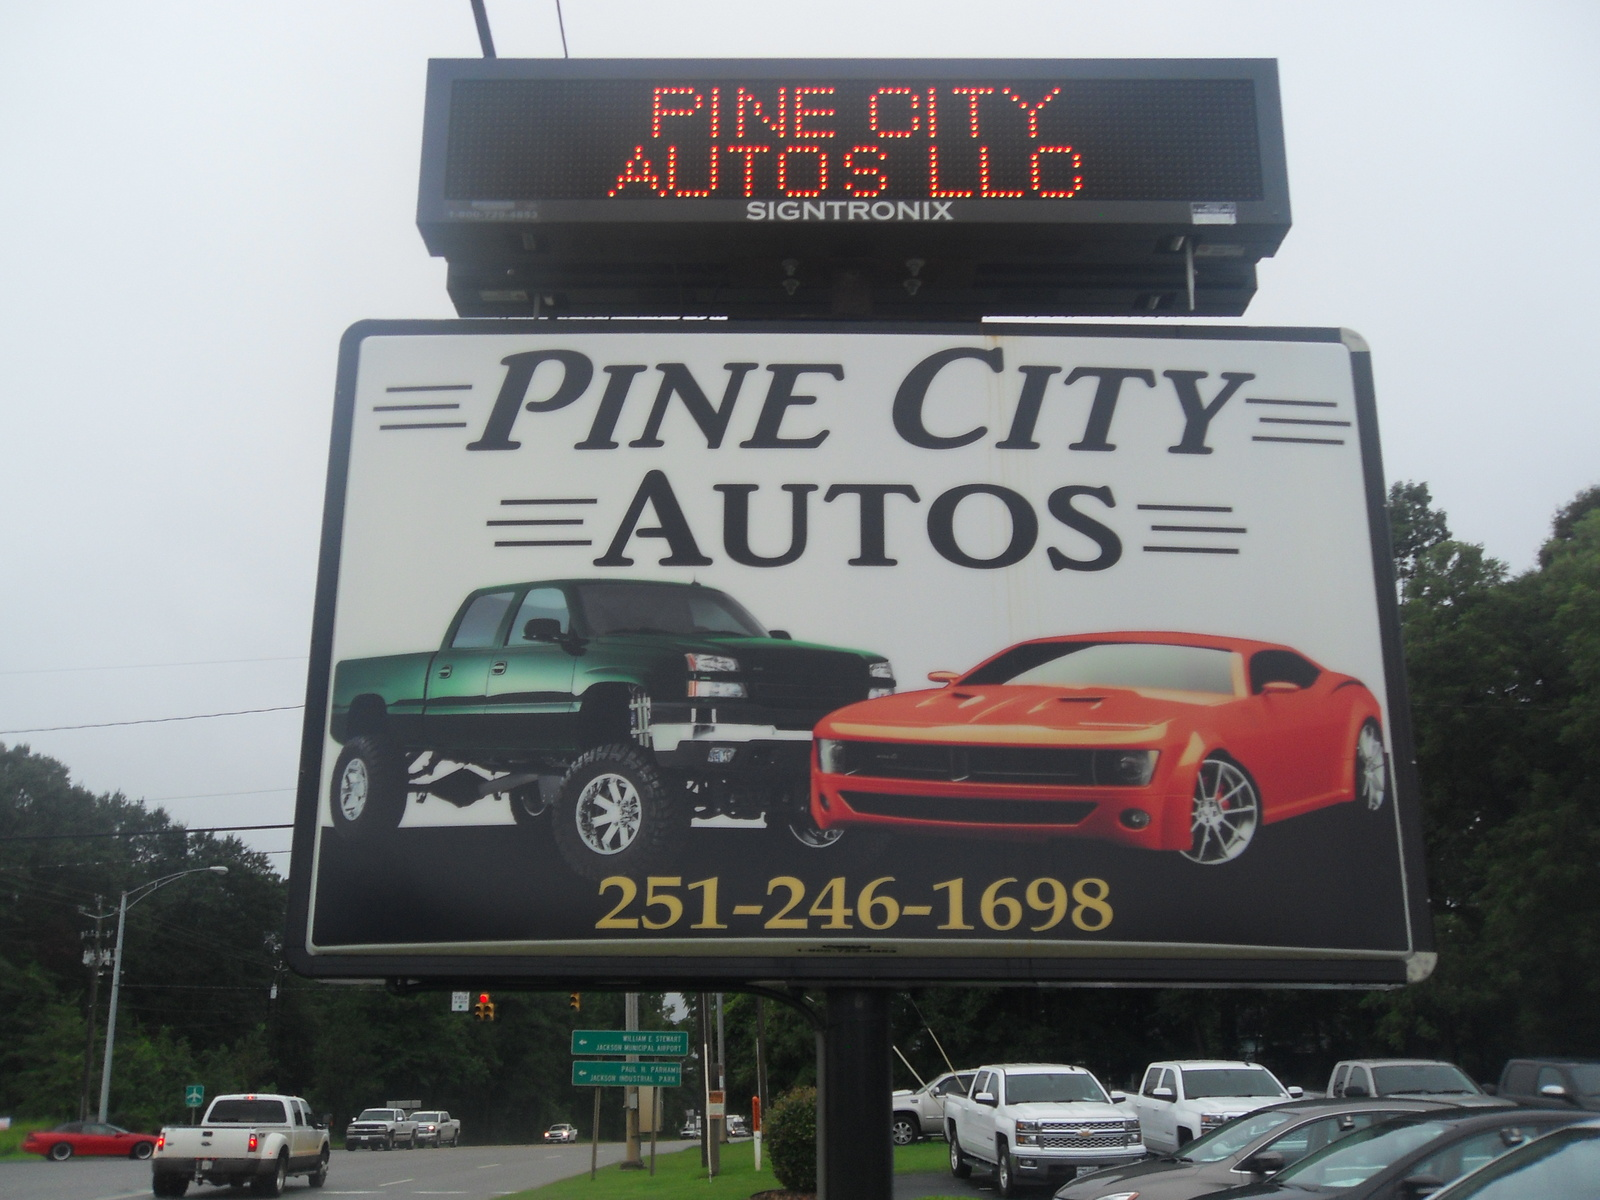 Used Cars Under $2000 New Pine City Autos Jackson Al Read Consumer Reviews Browse Used